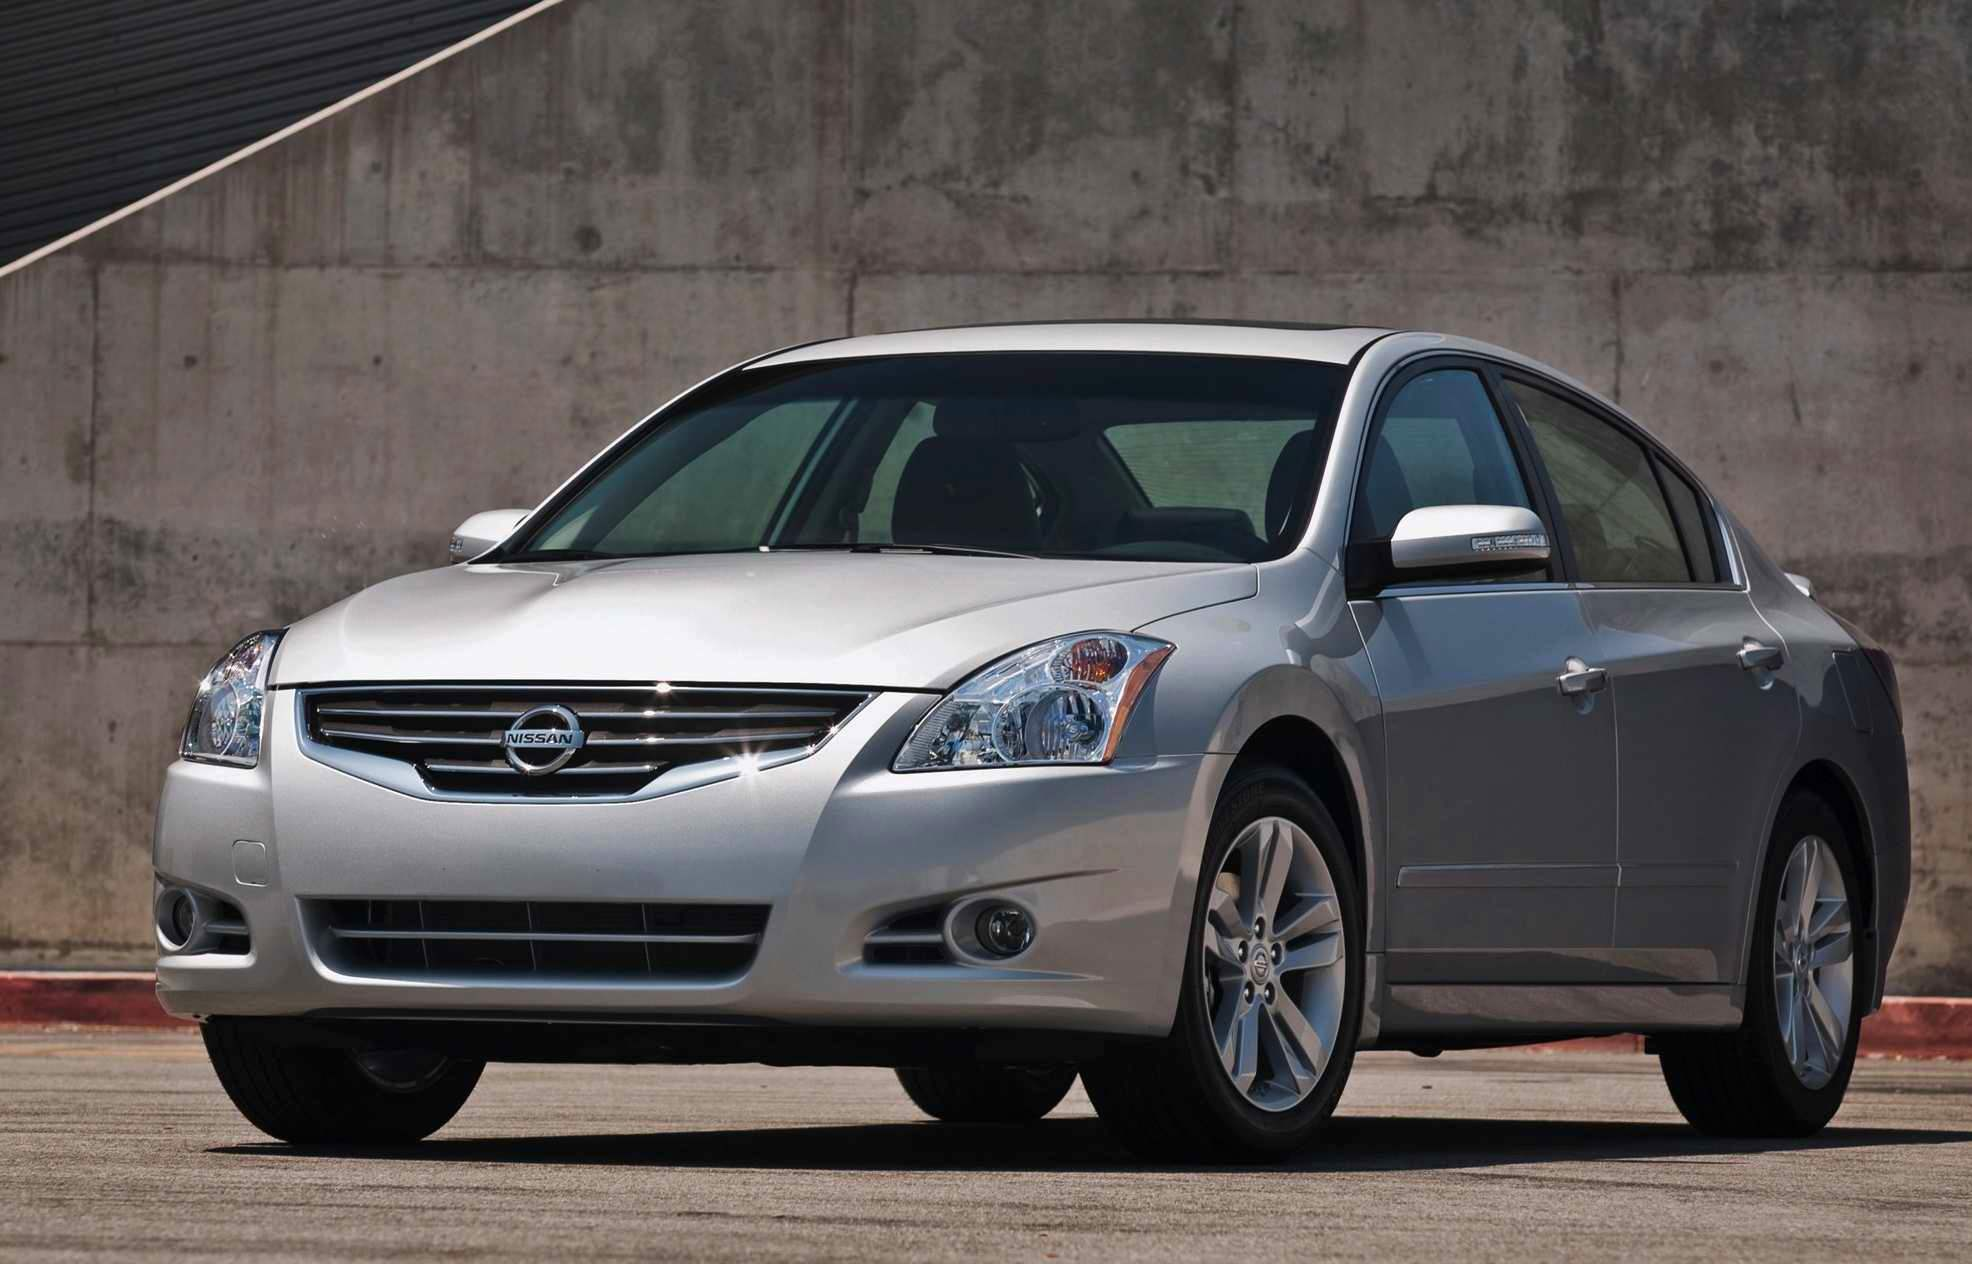 Usa March 2011 Nissan Altima Best Selling Passenger Car Discover The Top 60 Best Selling Models Best Selling Cars Blog